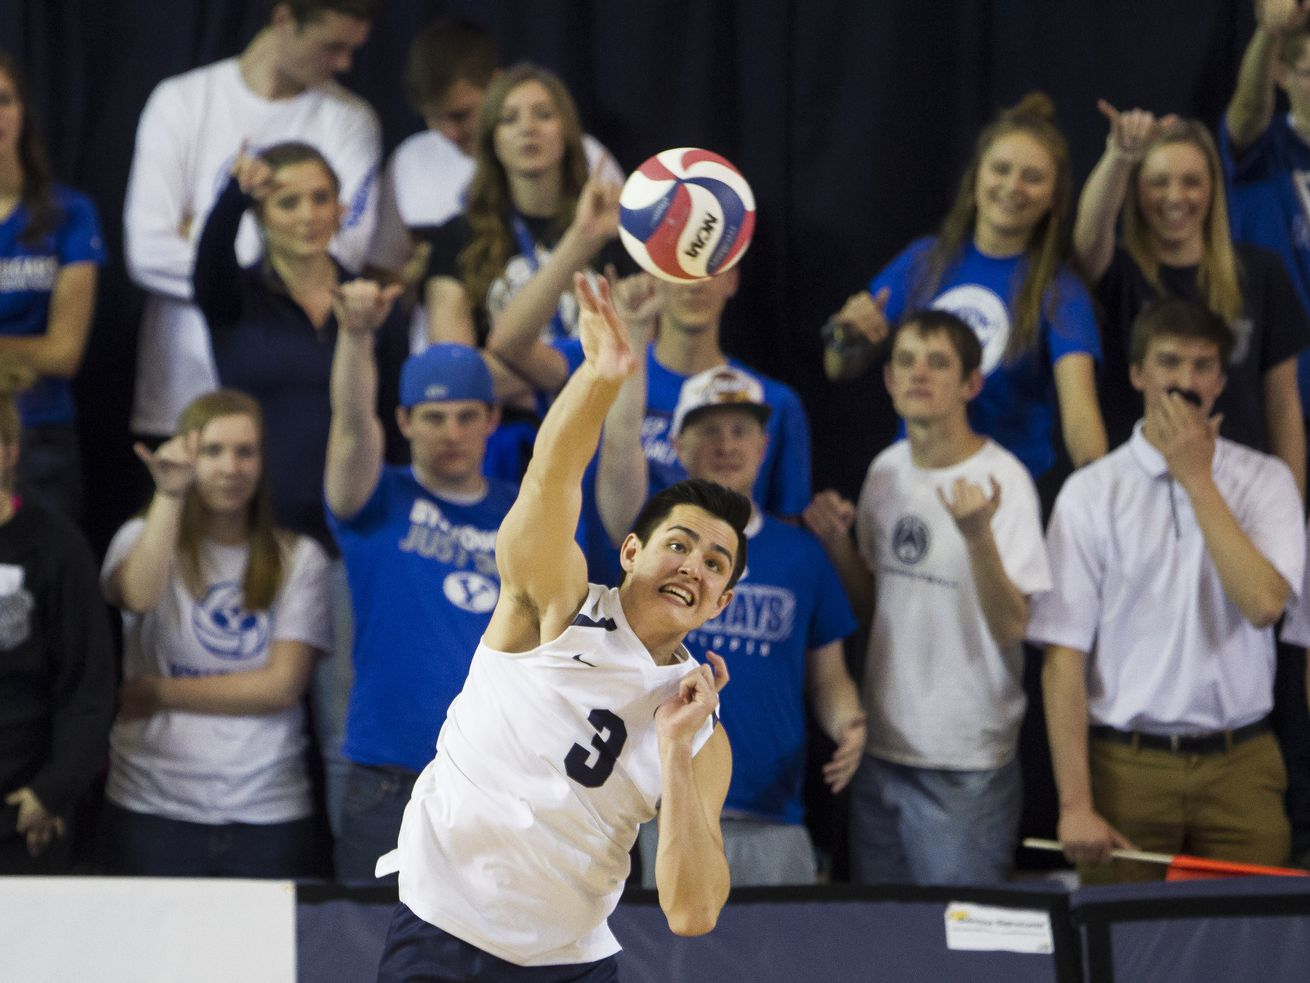 BYU's Wil Stanley serves the ball during BYU's win against USC at the Smith Fieldhouse on Thursday, April 19, 2018, in Provo.